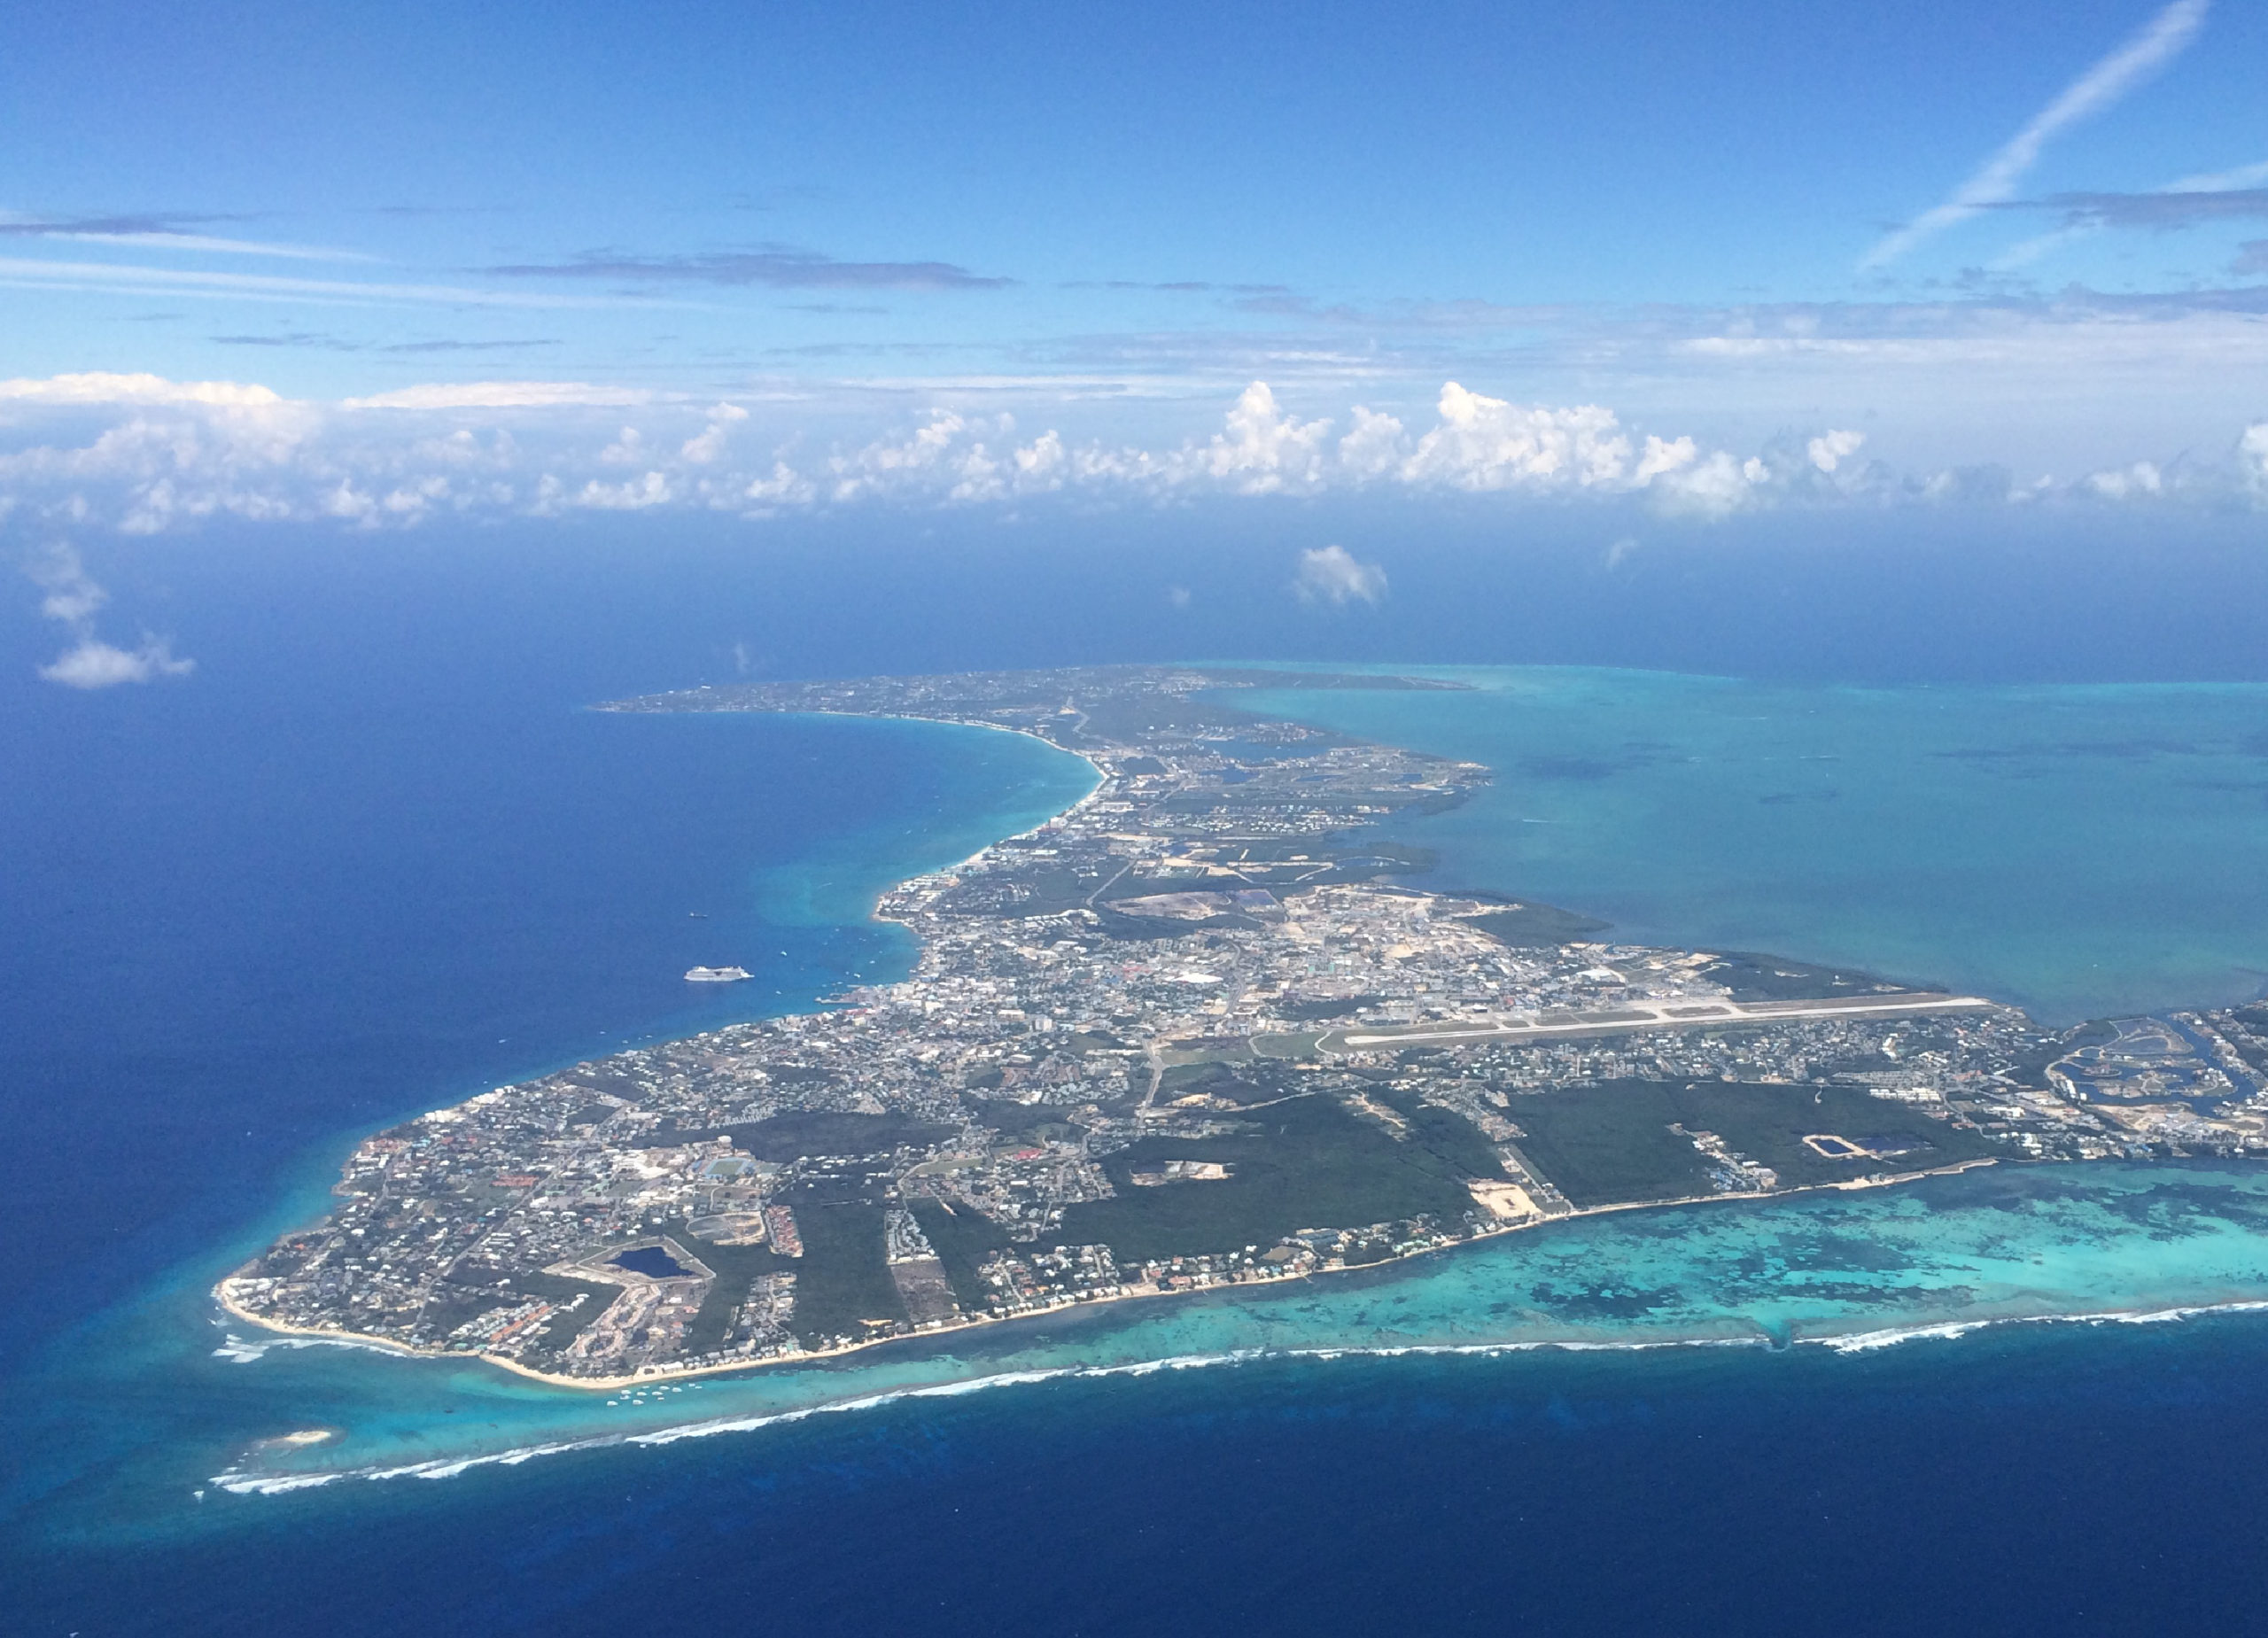 Aerial view of the Cayman Islands.